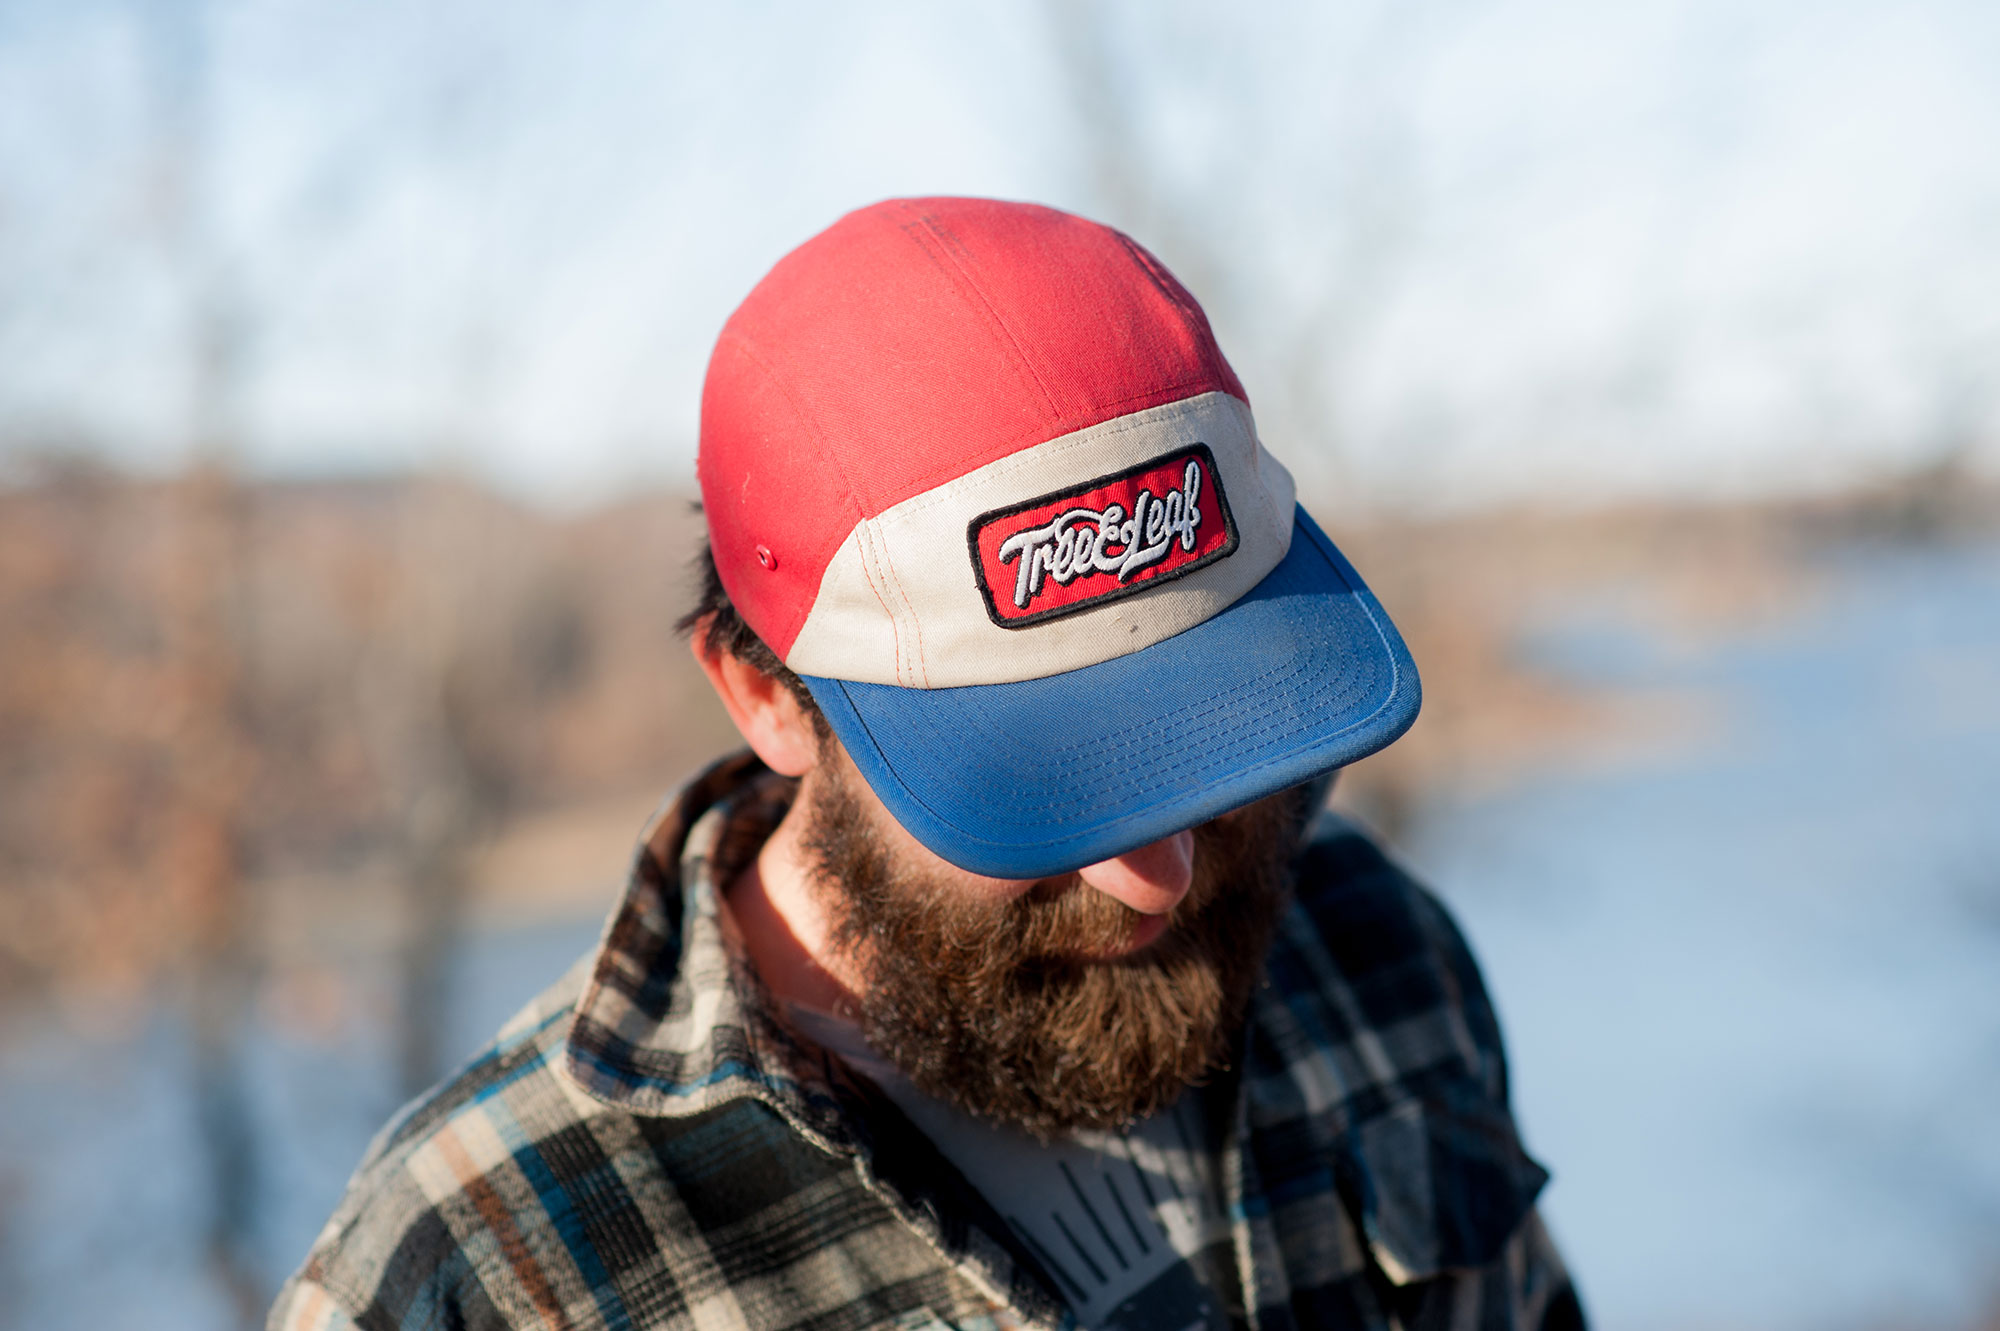 You won't catch me without a hat on. We've worked hard to curate some of the best hats around.